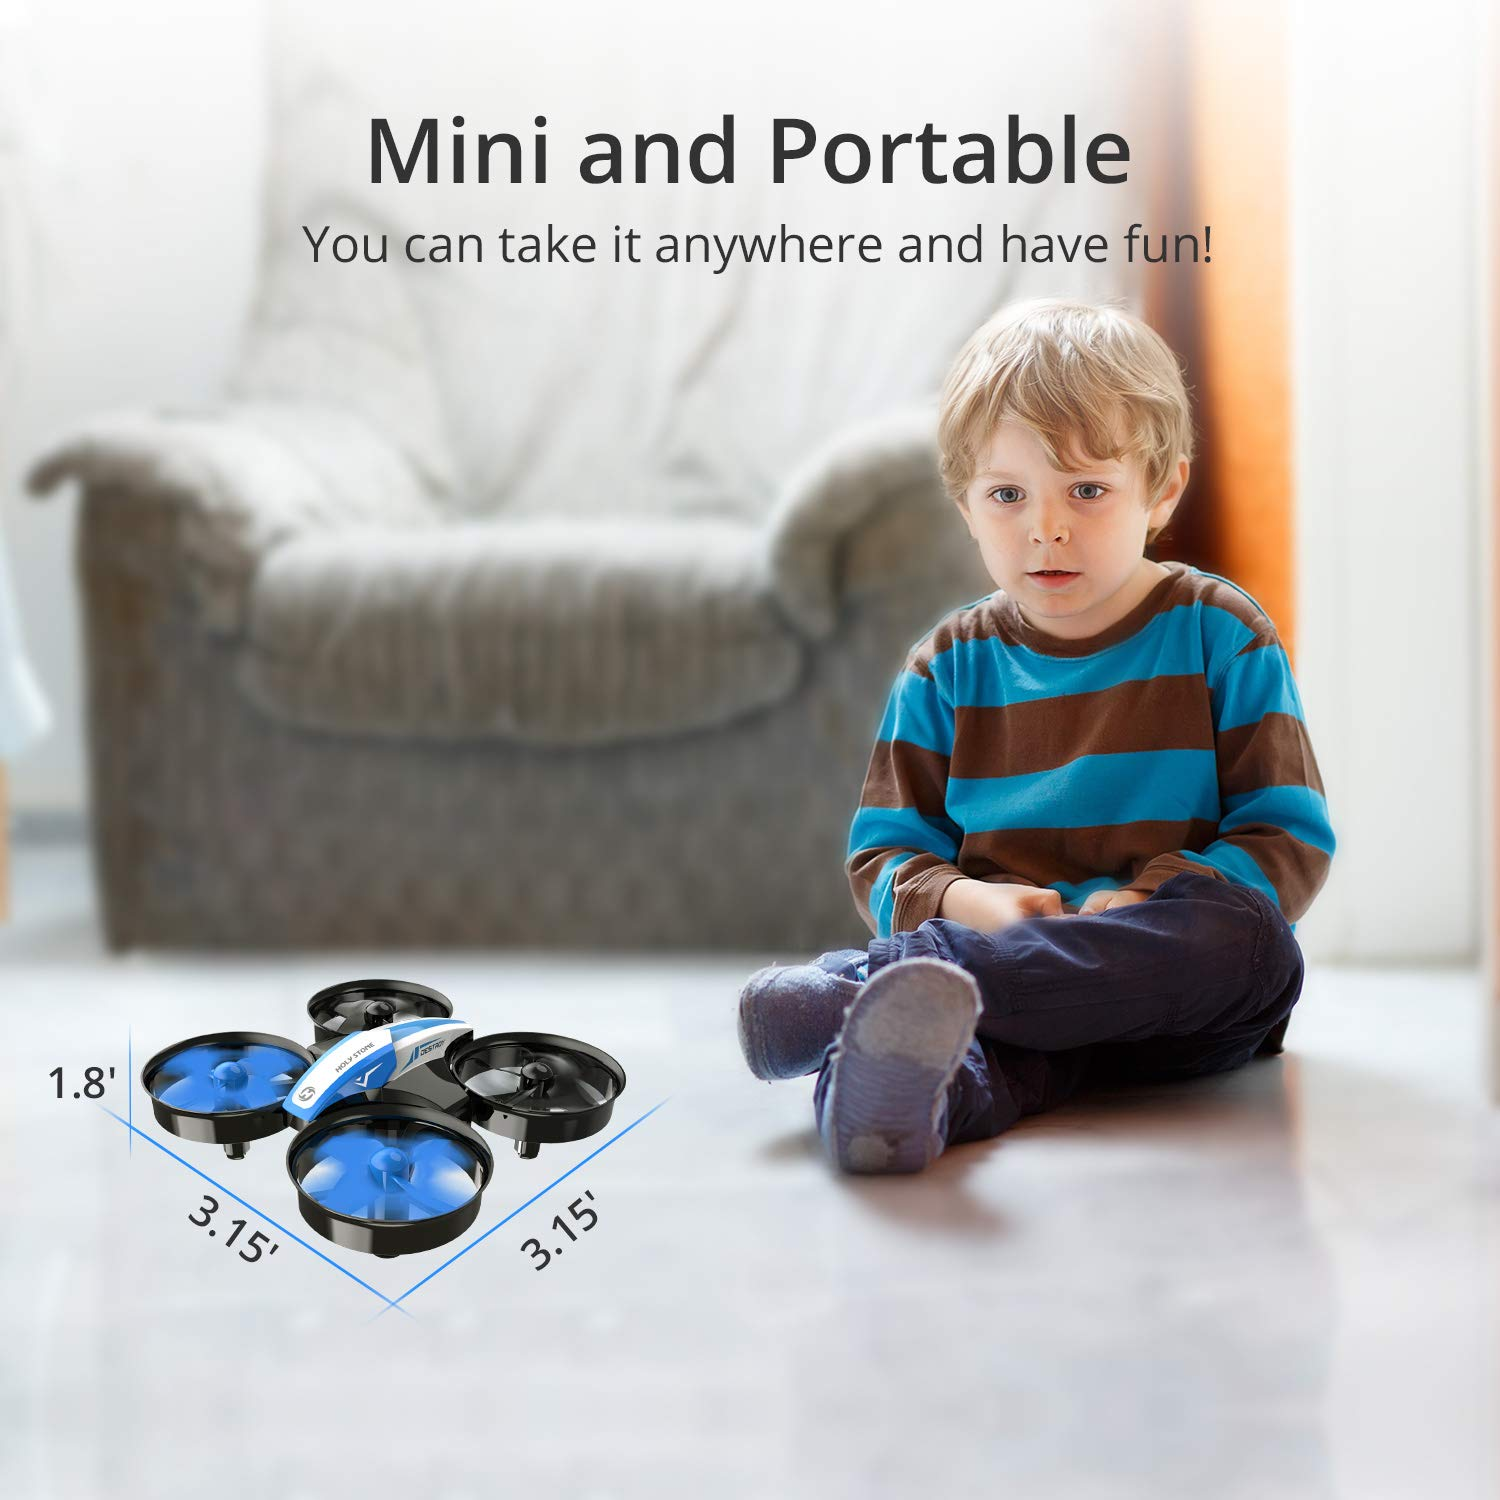 Holy Stone Mini Drone for Kids and Beginners RC Nano Quadcopter Indoor Small Helicopter Plane with Auto Hovering, 3D Flip, Headless Mode and 3 Batteries, Great Gift Toy for Boys and Girls, Blue by Holy Stone (Image #5)